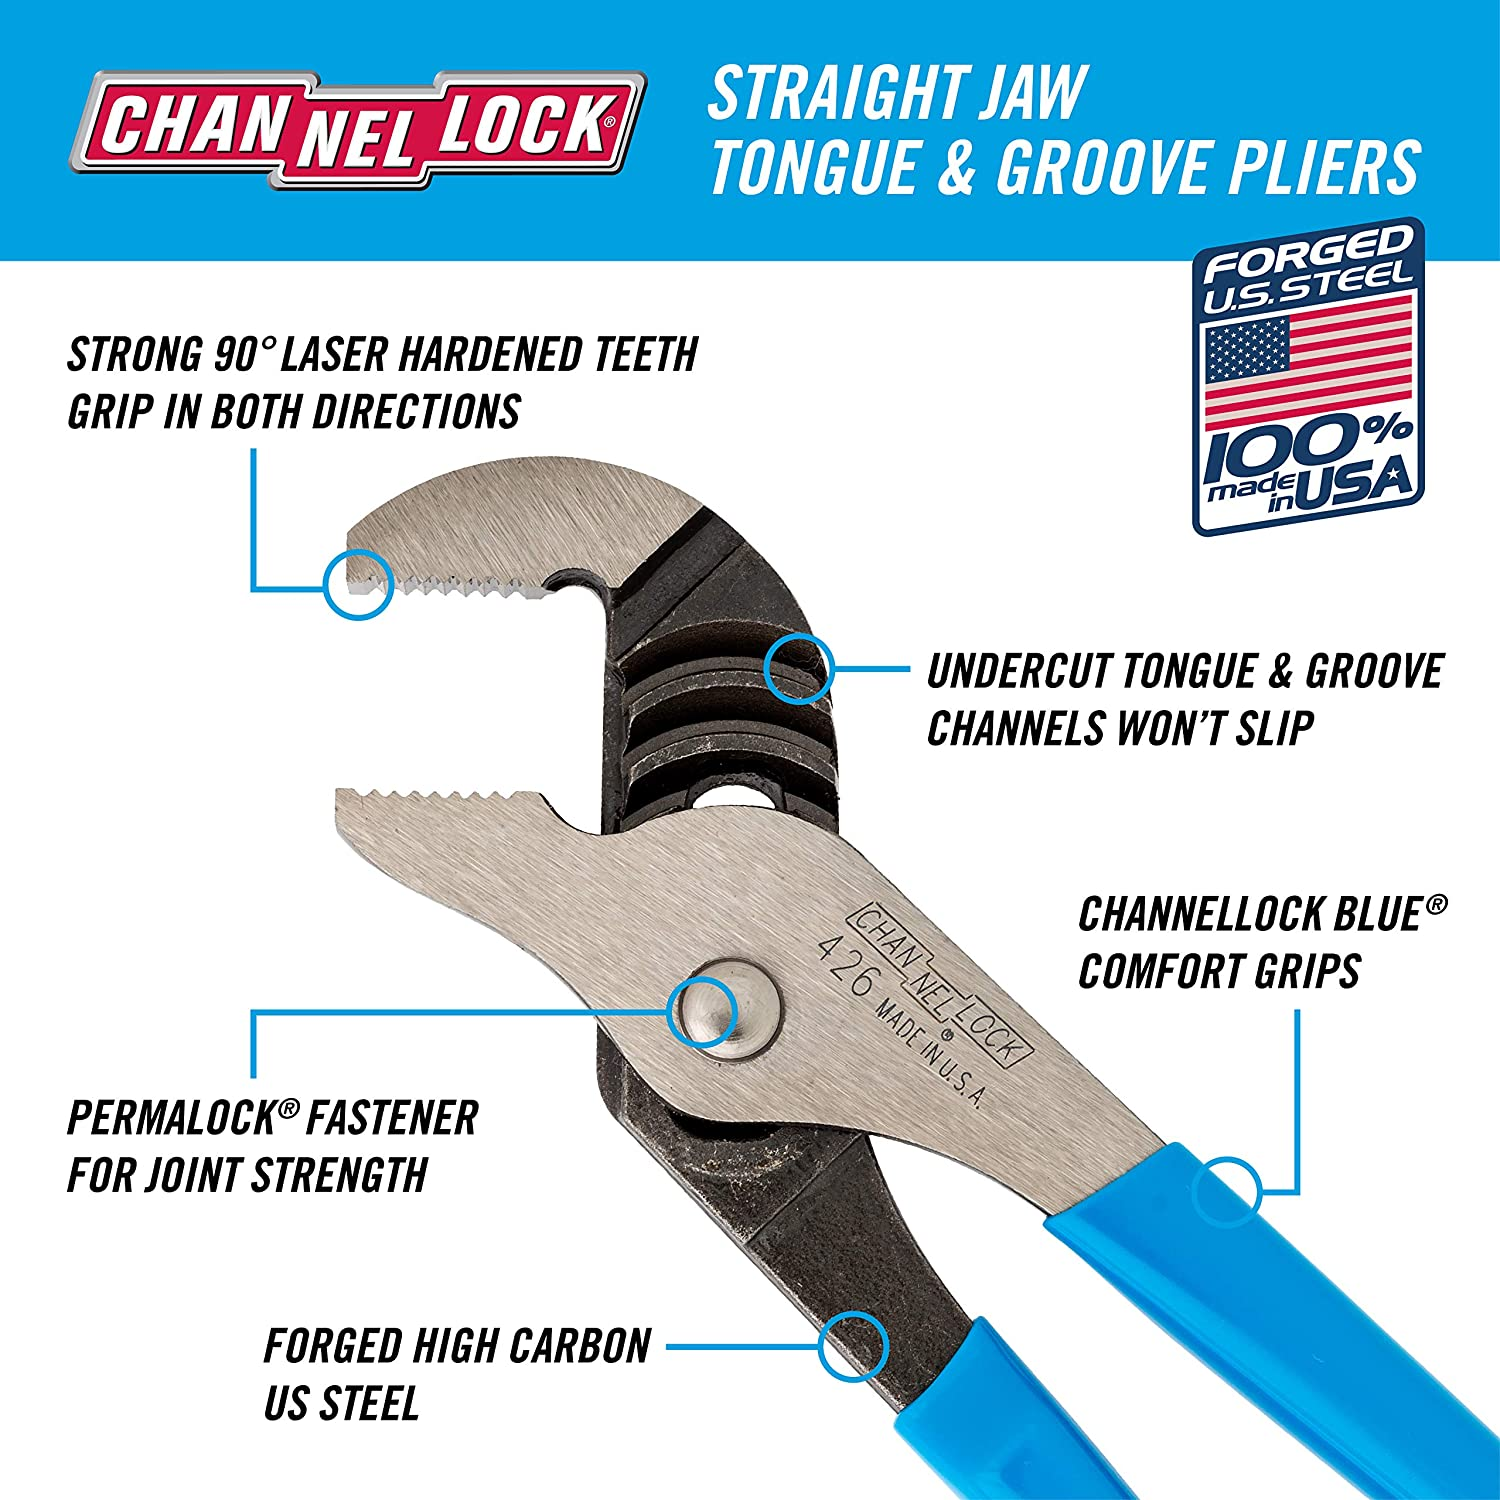 Channellock 460 Straight Jaw Tongue And Groove Plier Tongue And Groove Pliers Amazon Com